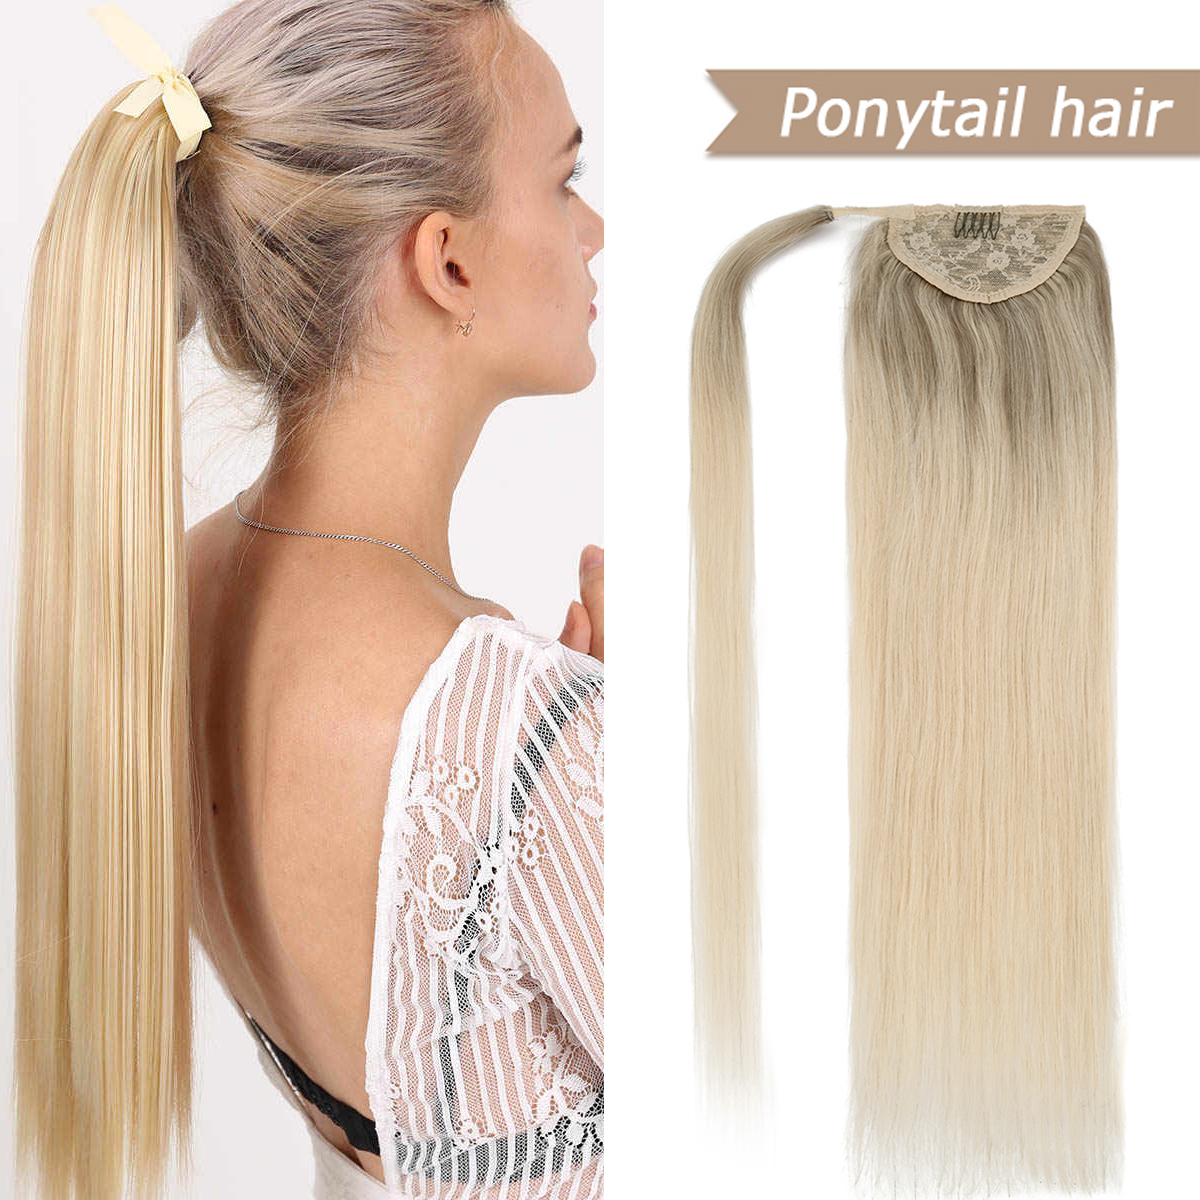 WIT Brazilian Natural Human Hair Balayage Ponytail Extensions Real Human Hair Pony tail Clip Ins Machine Made Remy Blonde Black